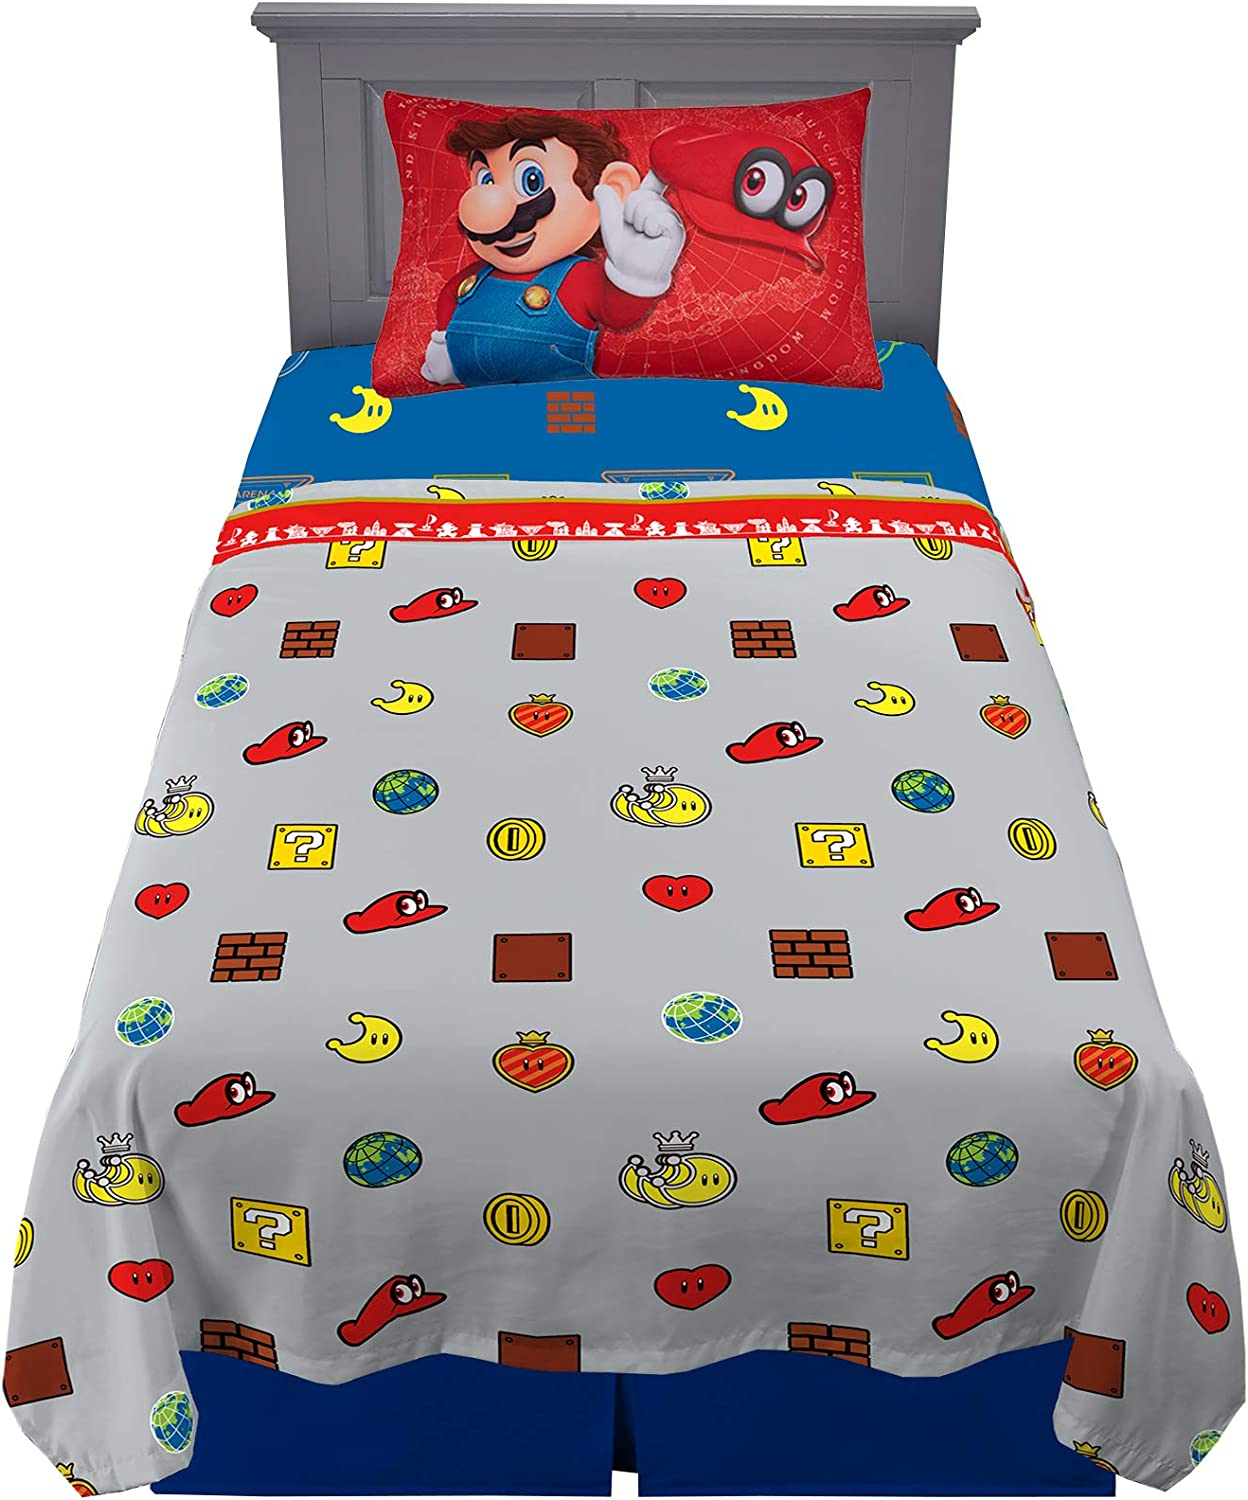 Super Mario Odyssey 3 Piece Twin Size Soft Bed Sheet for Kids